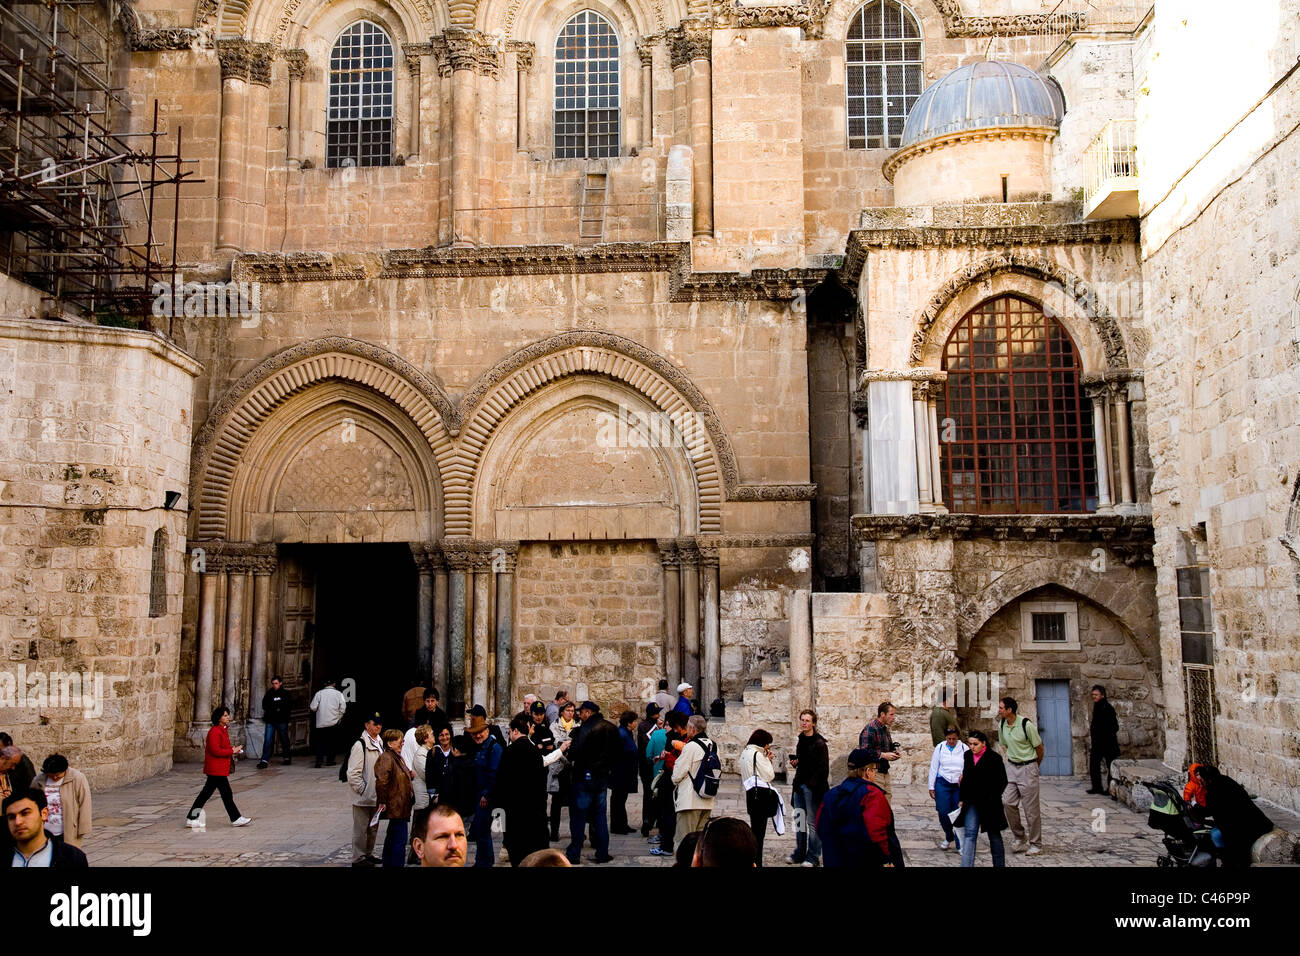 Photograph of the church of the Holy Sepulchre in the old city of Jerusalem - Stock Image